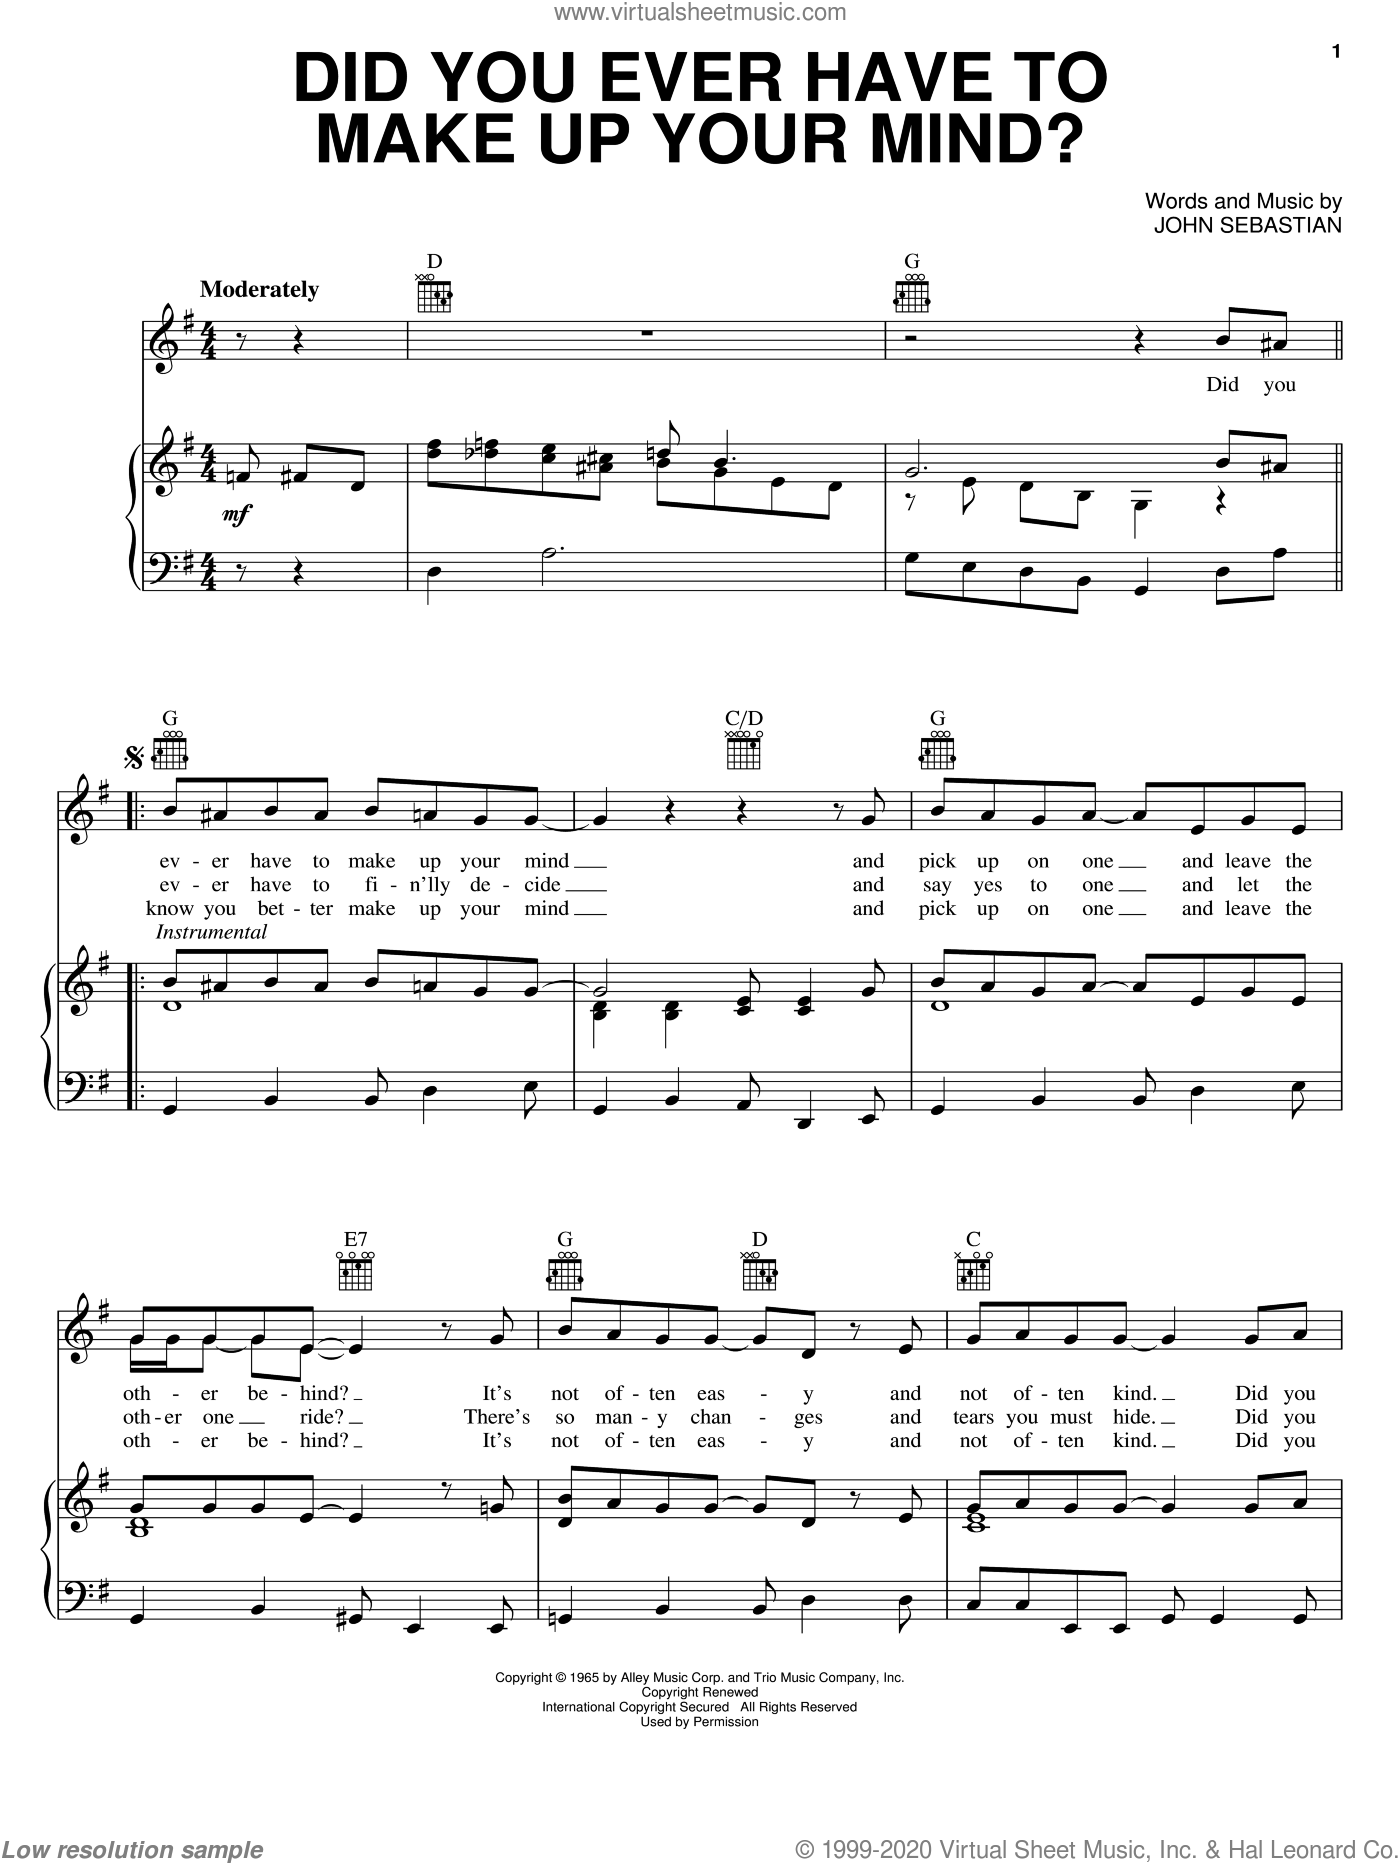 Did You Ever Have To Make Up Your Mind? sheet music for voice, piano or guitar by John Sebastian. Score Image Preview.